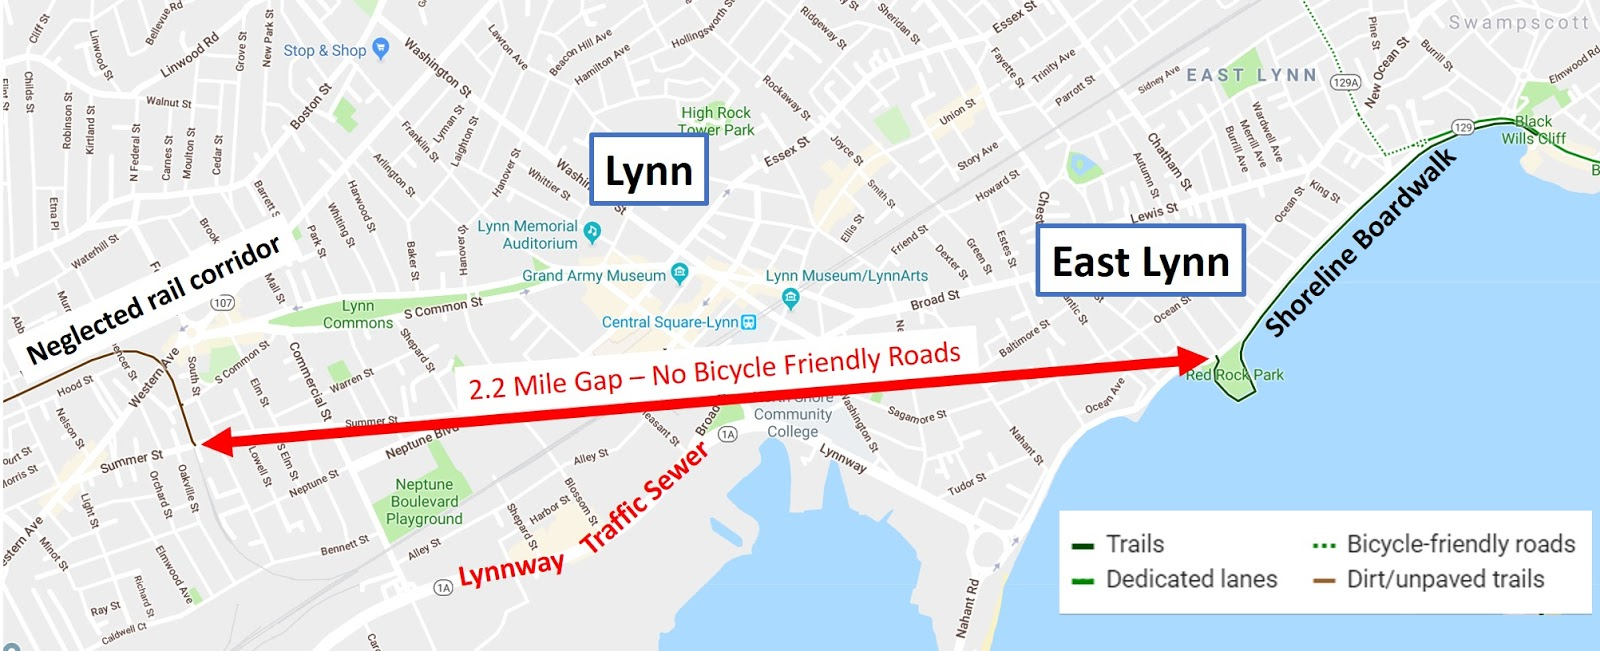 is there an equity gap in your greenway